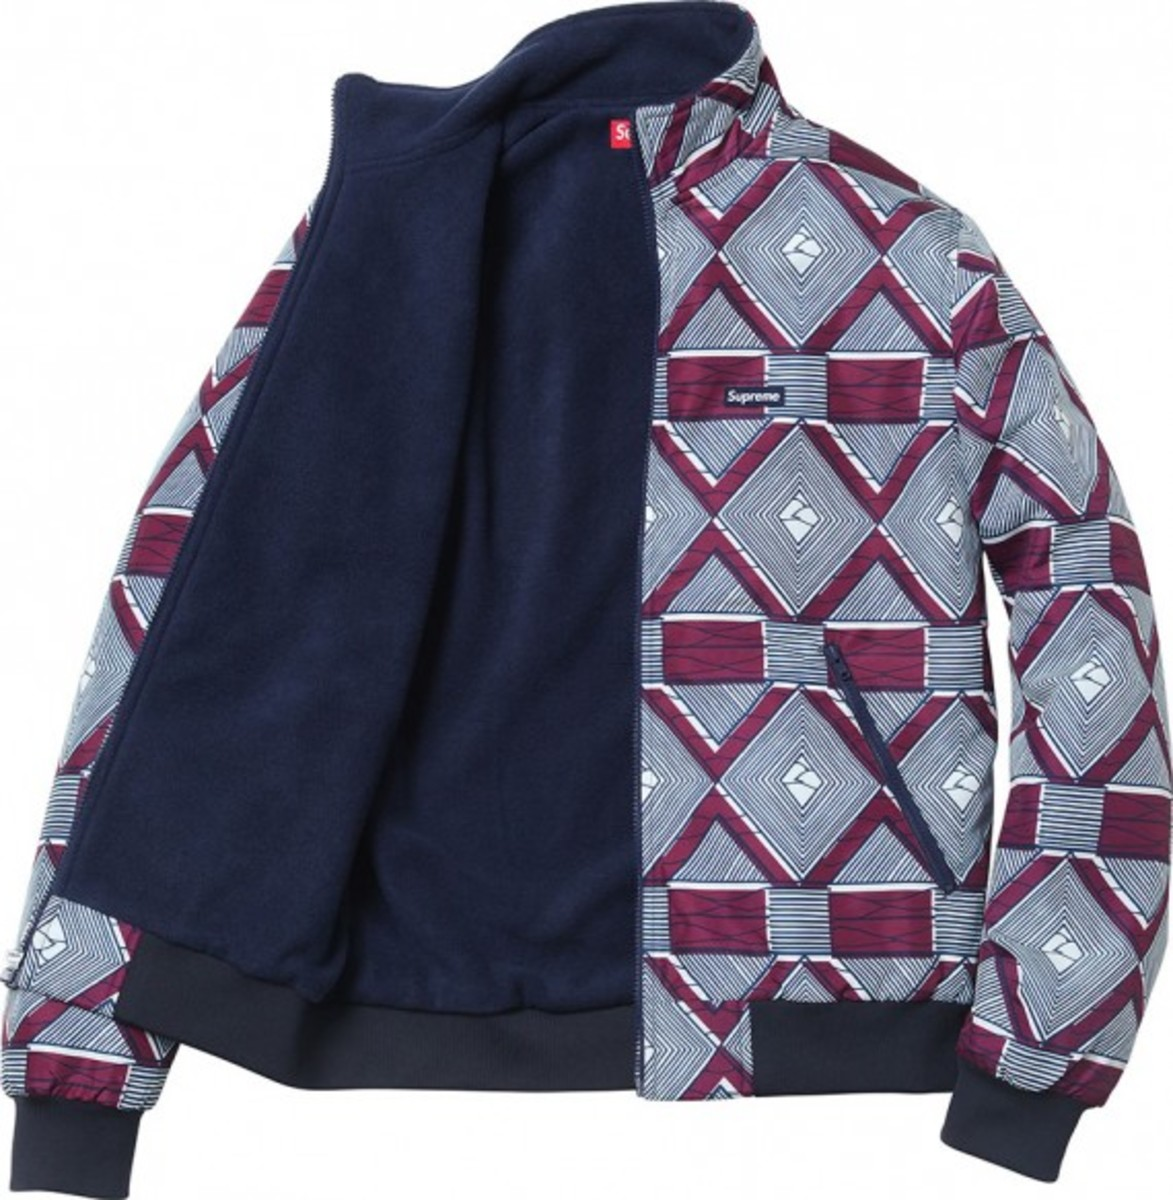 1-african_windbreaker-zoom_1345455030